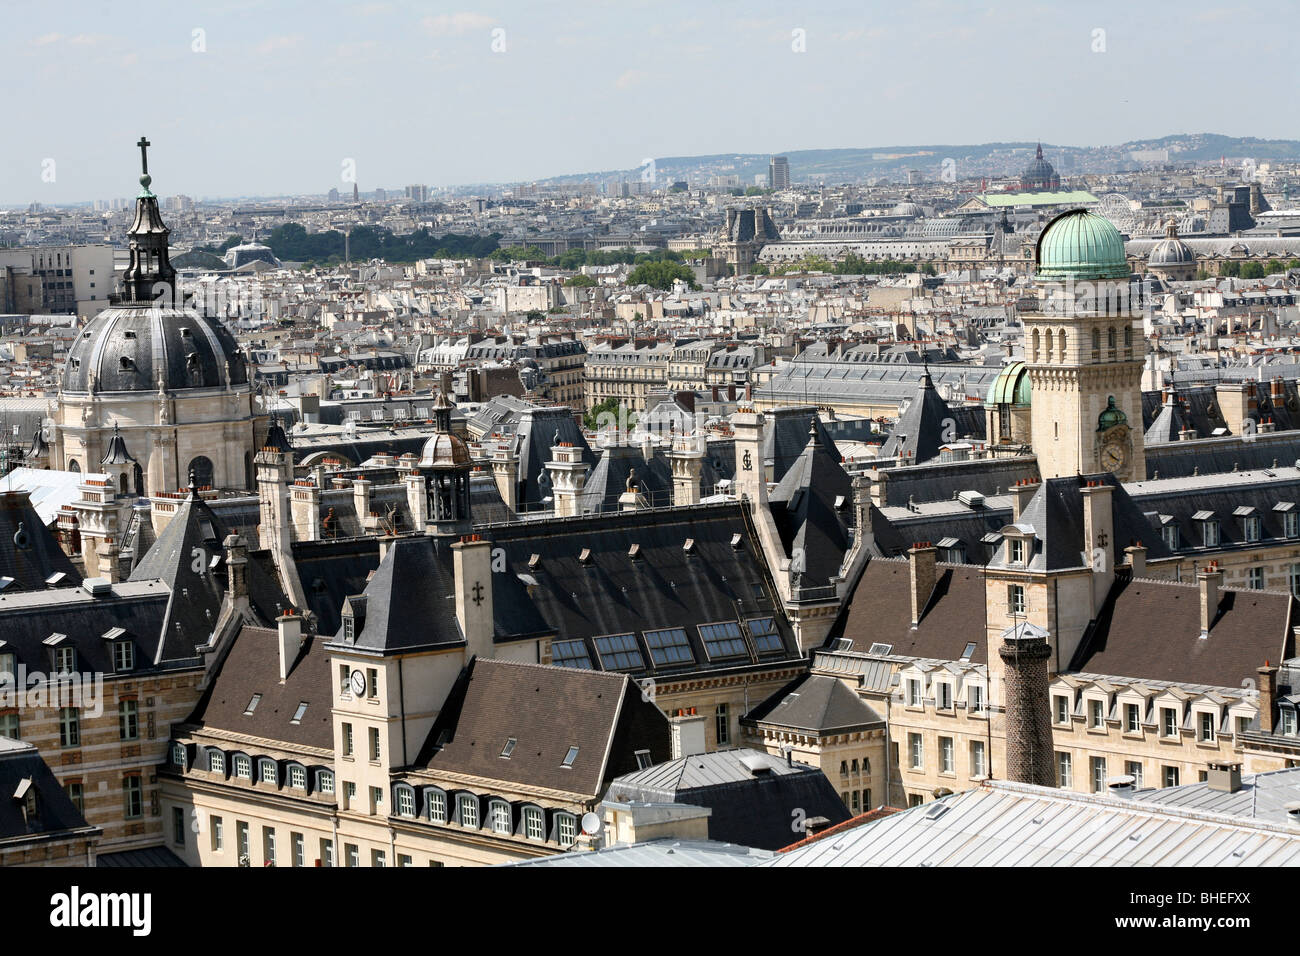 High view of the Sorbonne, University of Paris - Stock Image